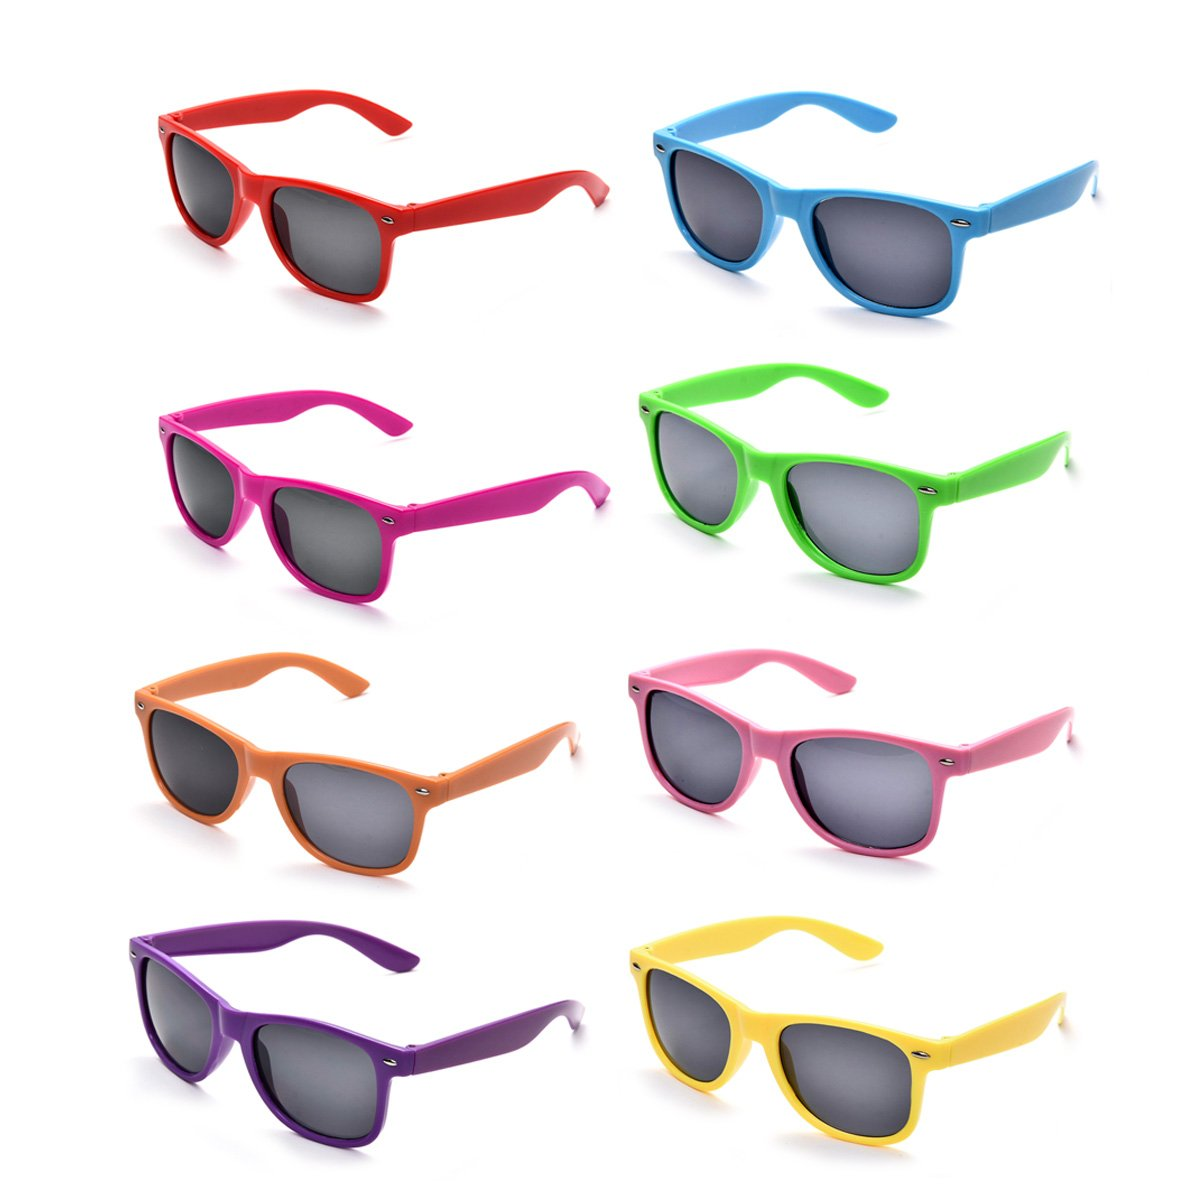 Neon Colors Party Favor Supplies Unisex Sunglasses Pack of 8 (Multicolor) by Pibupibu